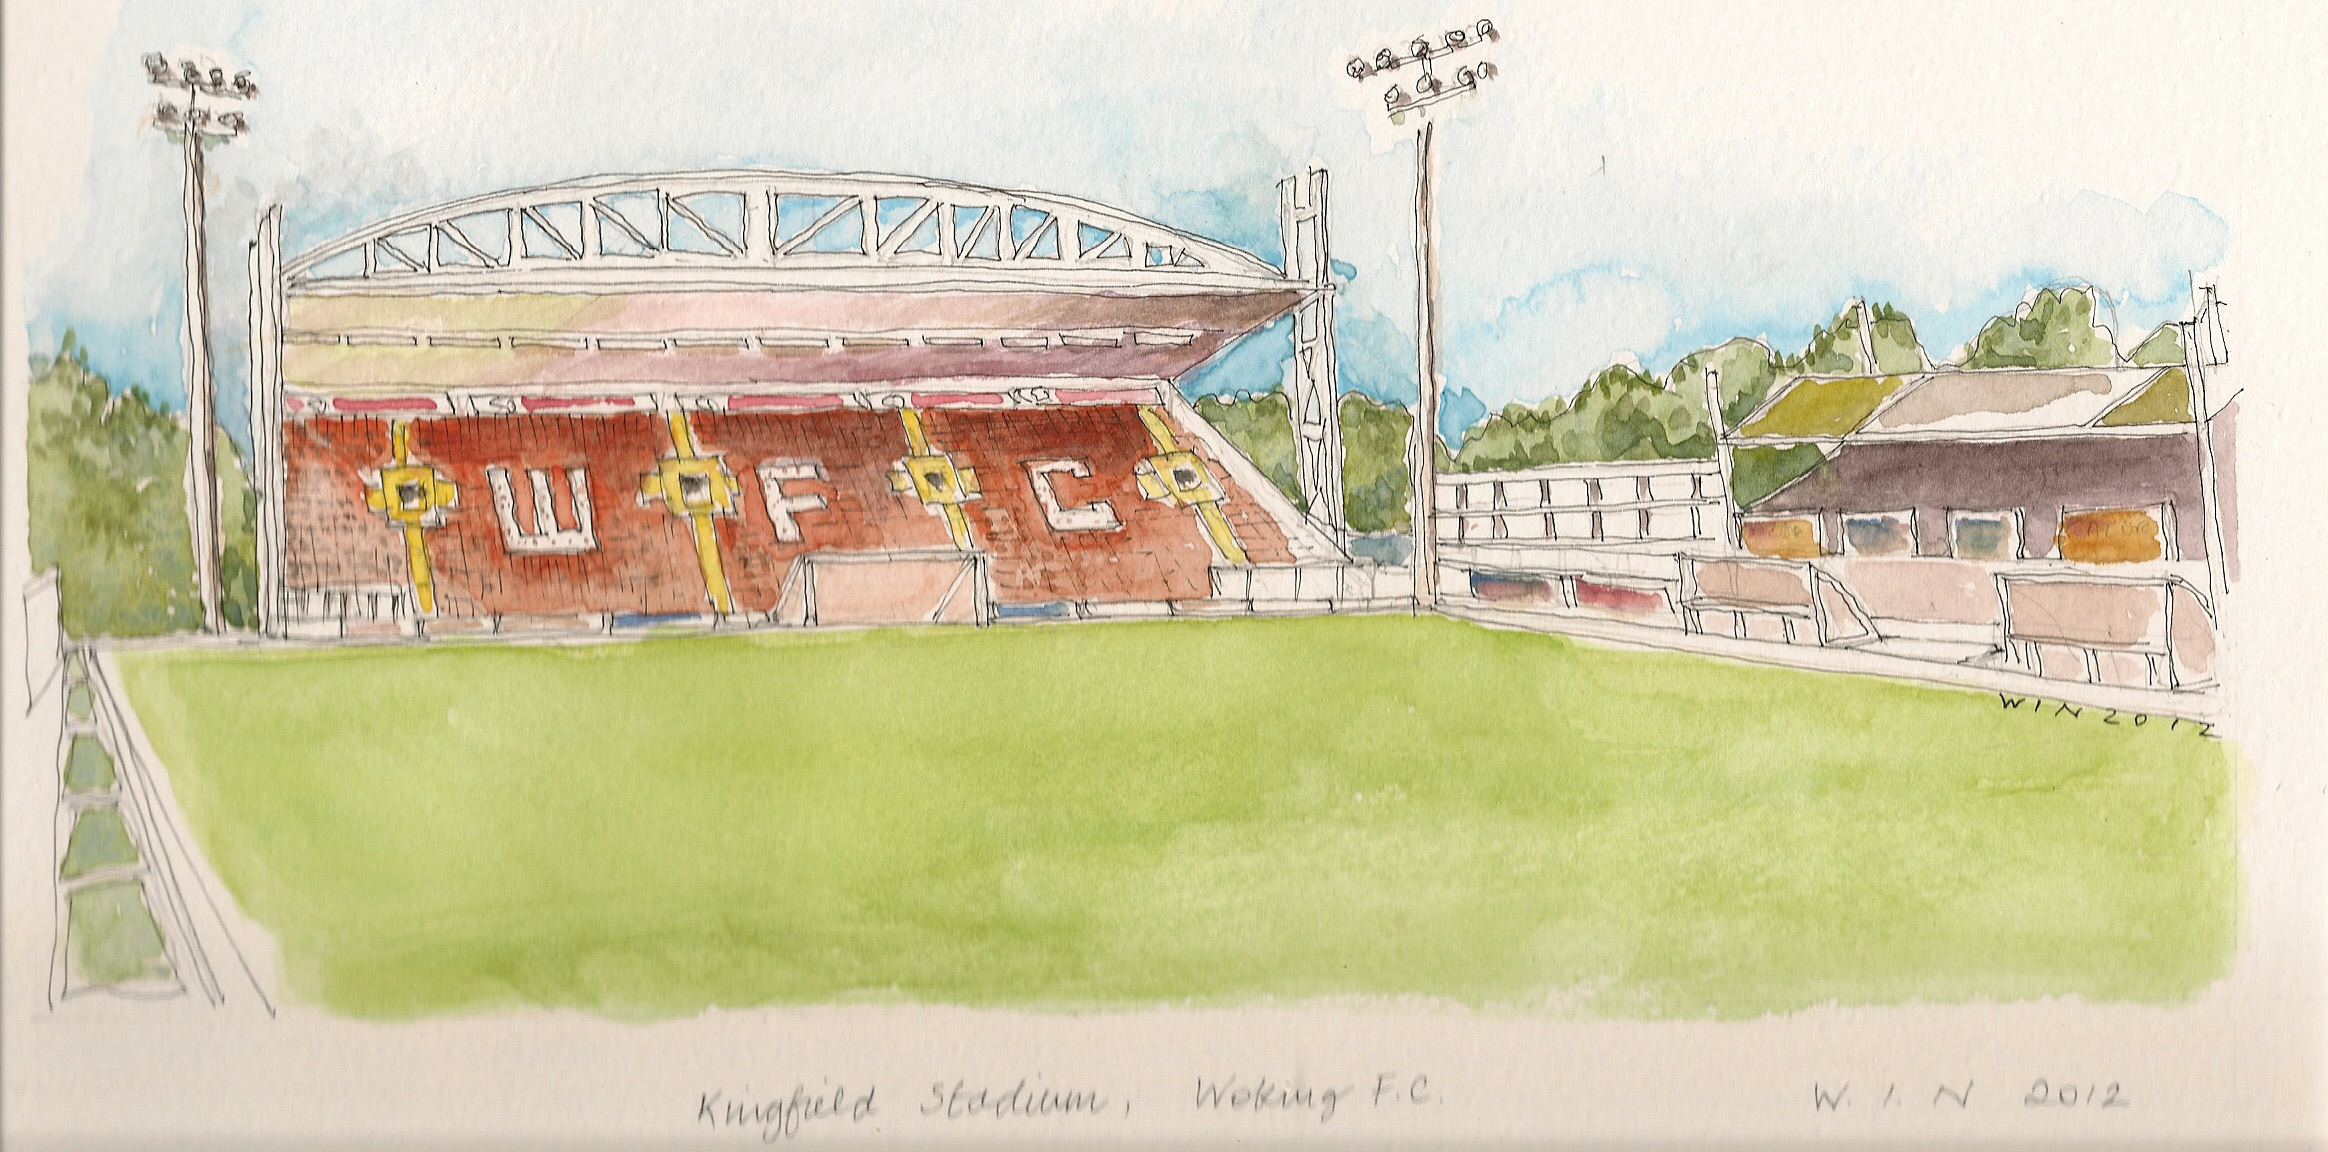 Kingfield Watercolour Offer